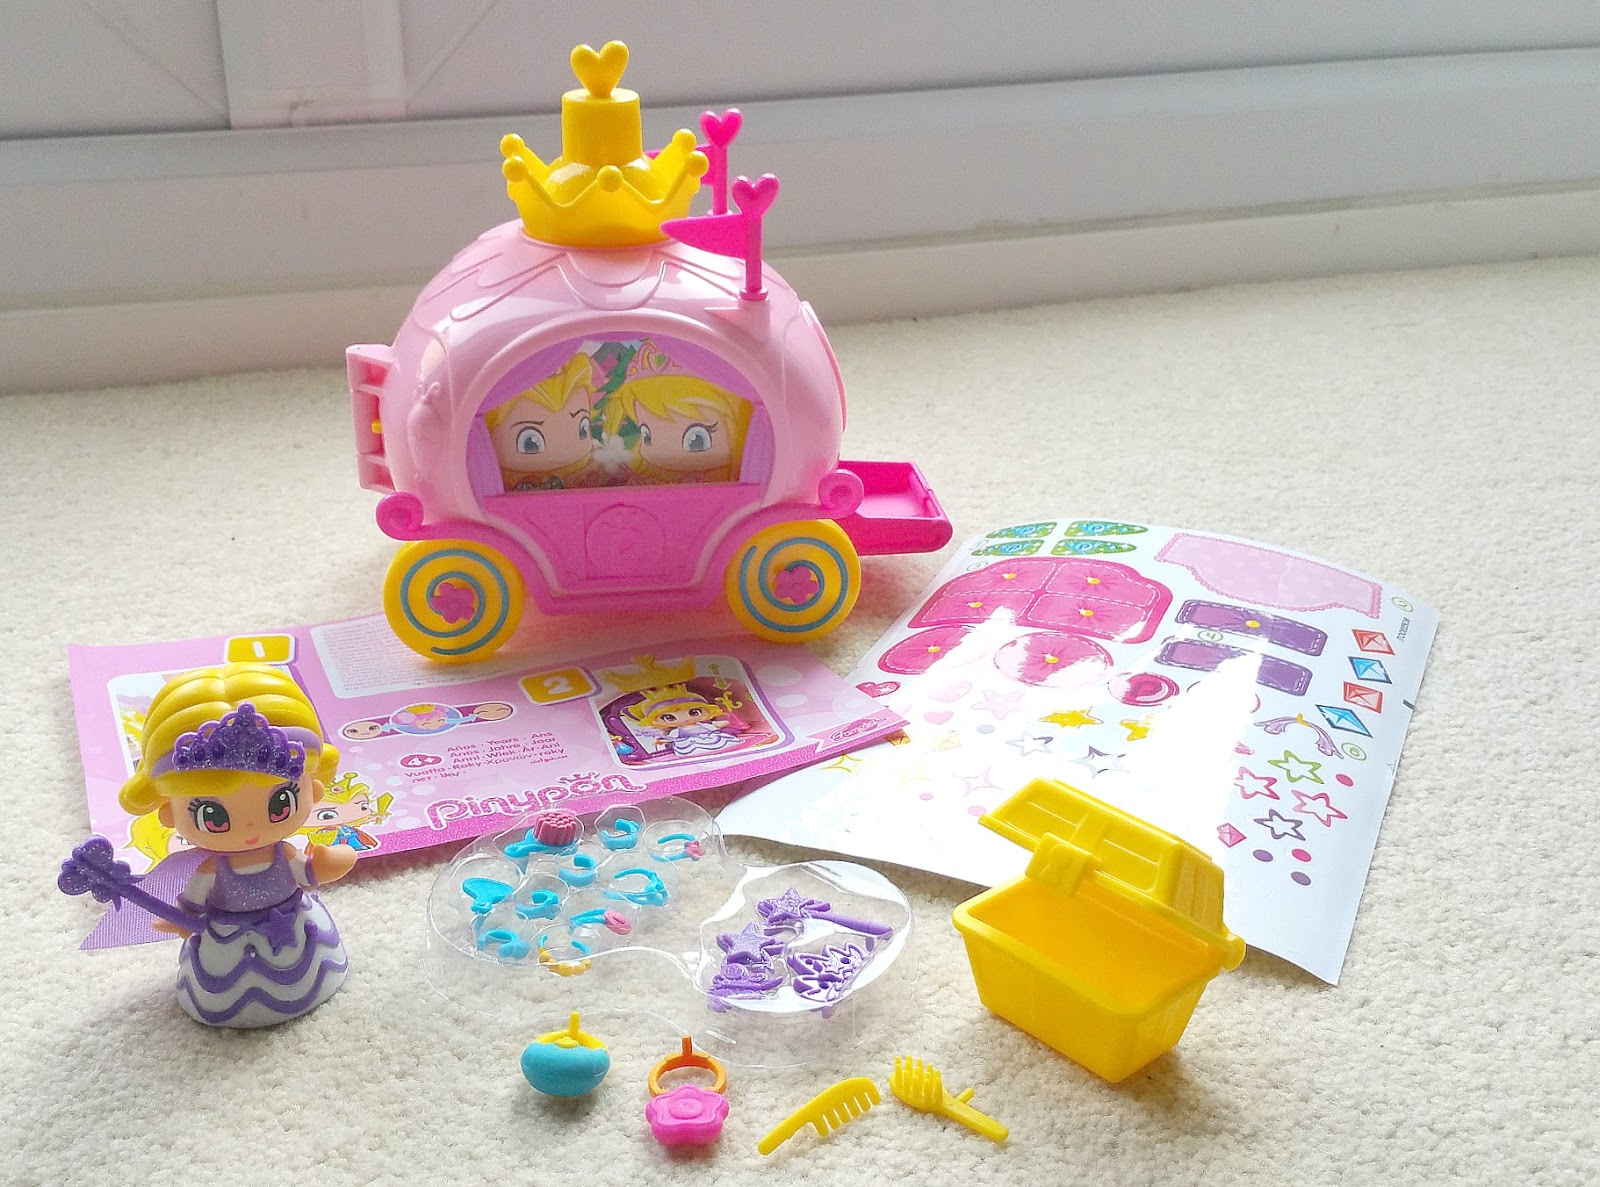 PinyPon Fairytale, Bandai toys, princess dolls